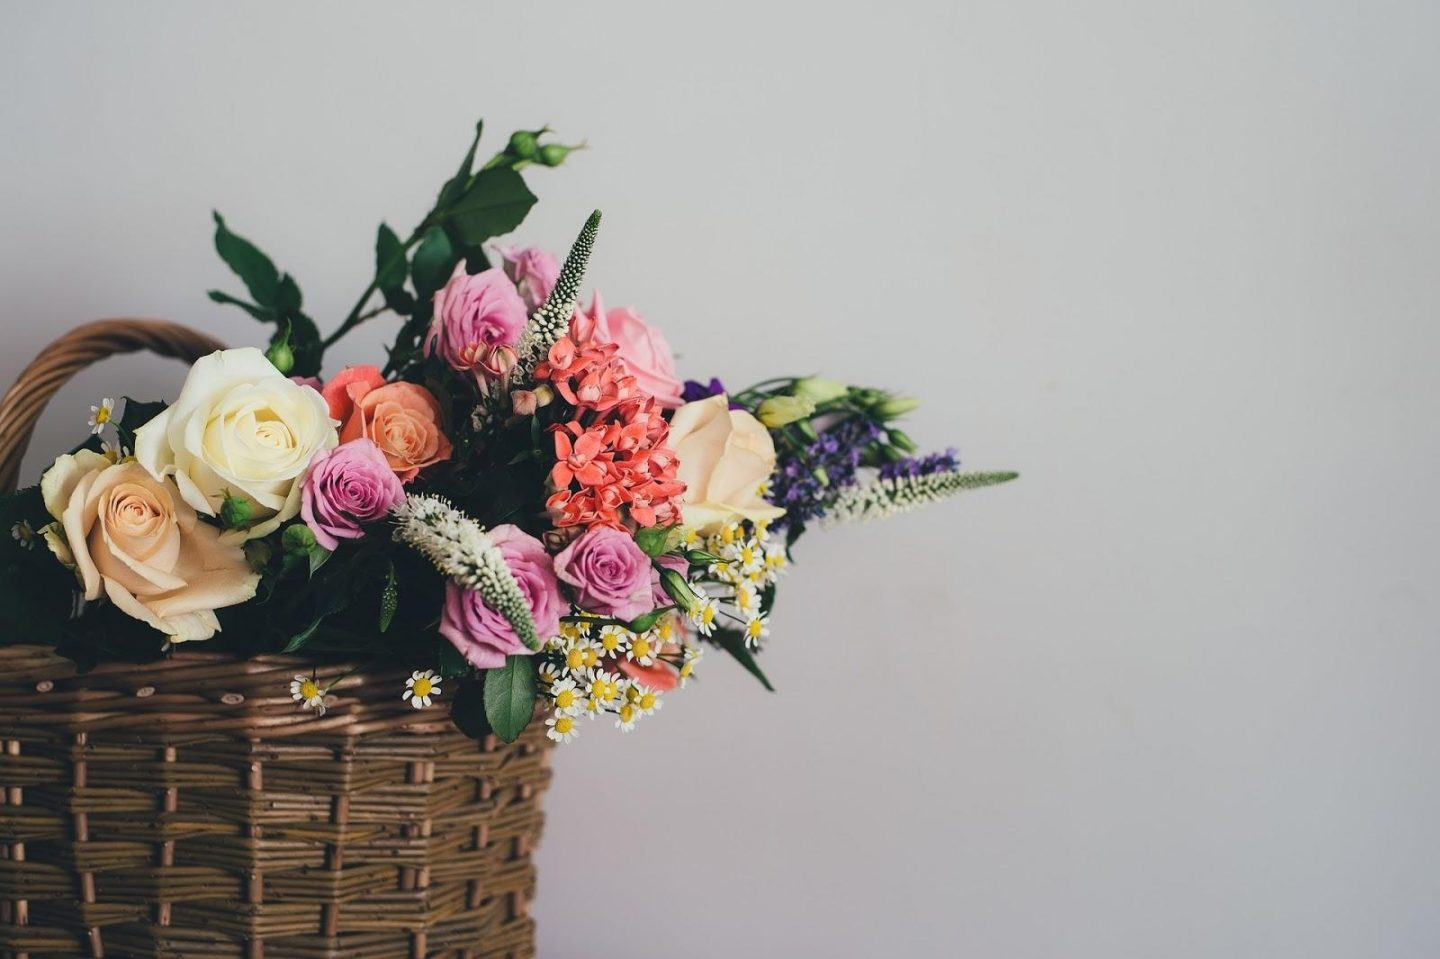 MOST POPULAR AND TRADITIONAL MOTHER'S DAY FLOWERS AROUND THE GLOBE